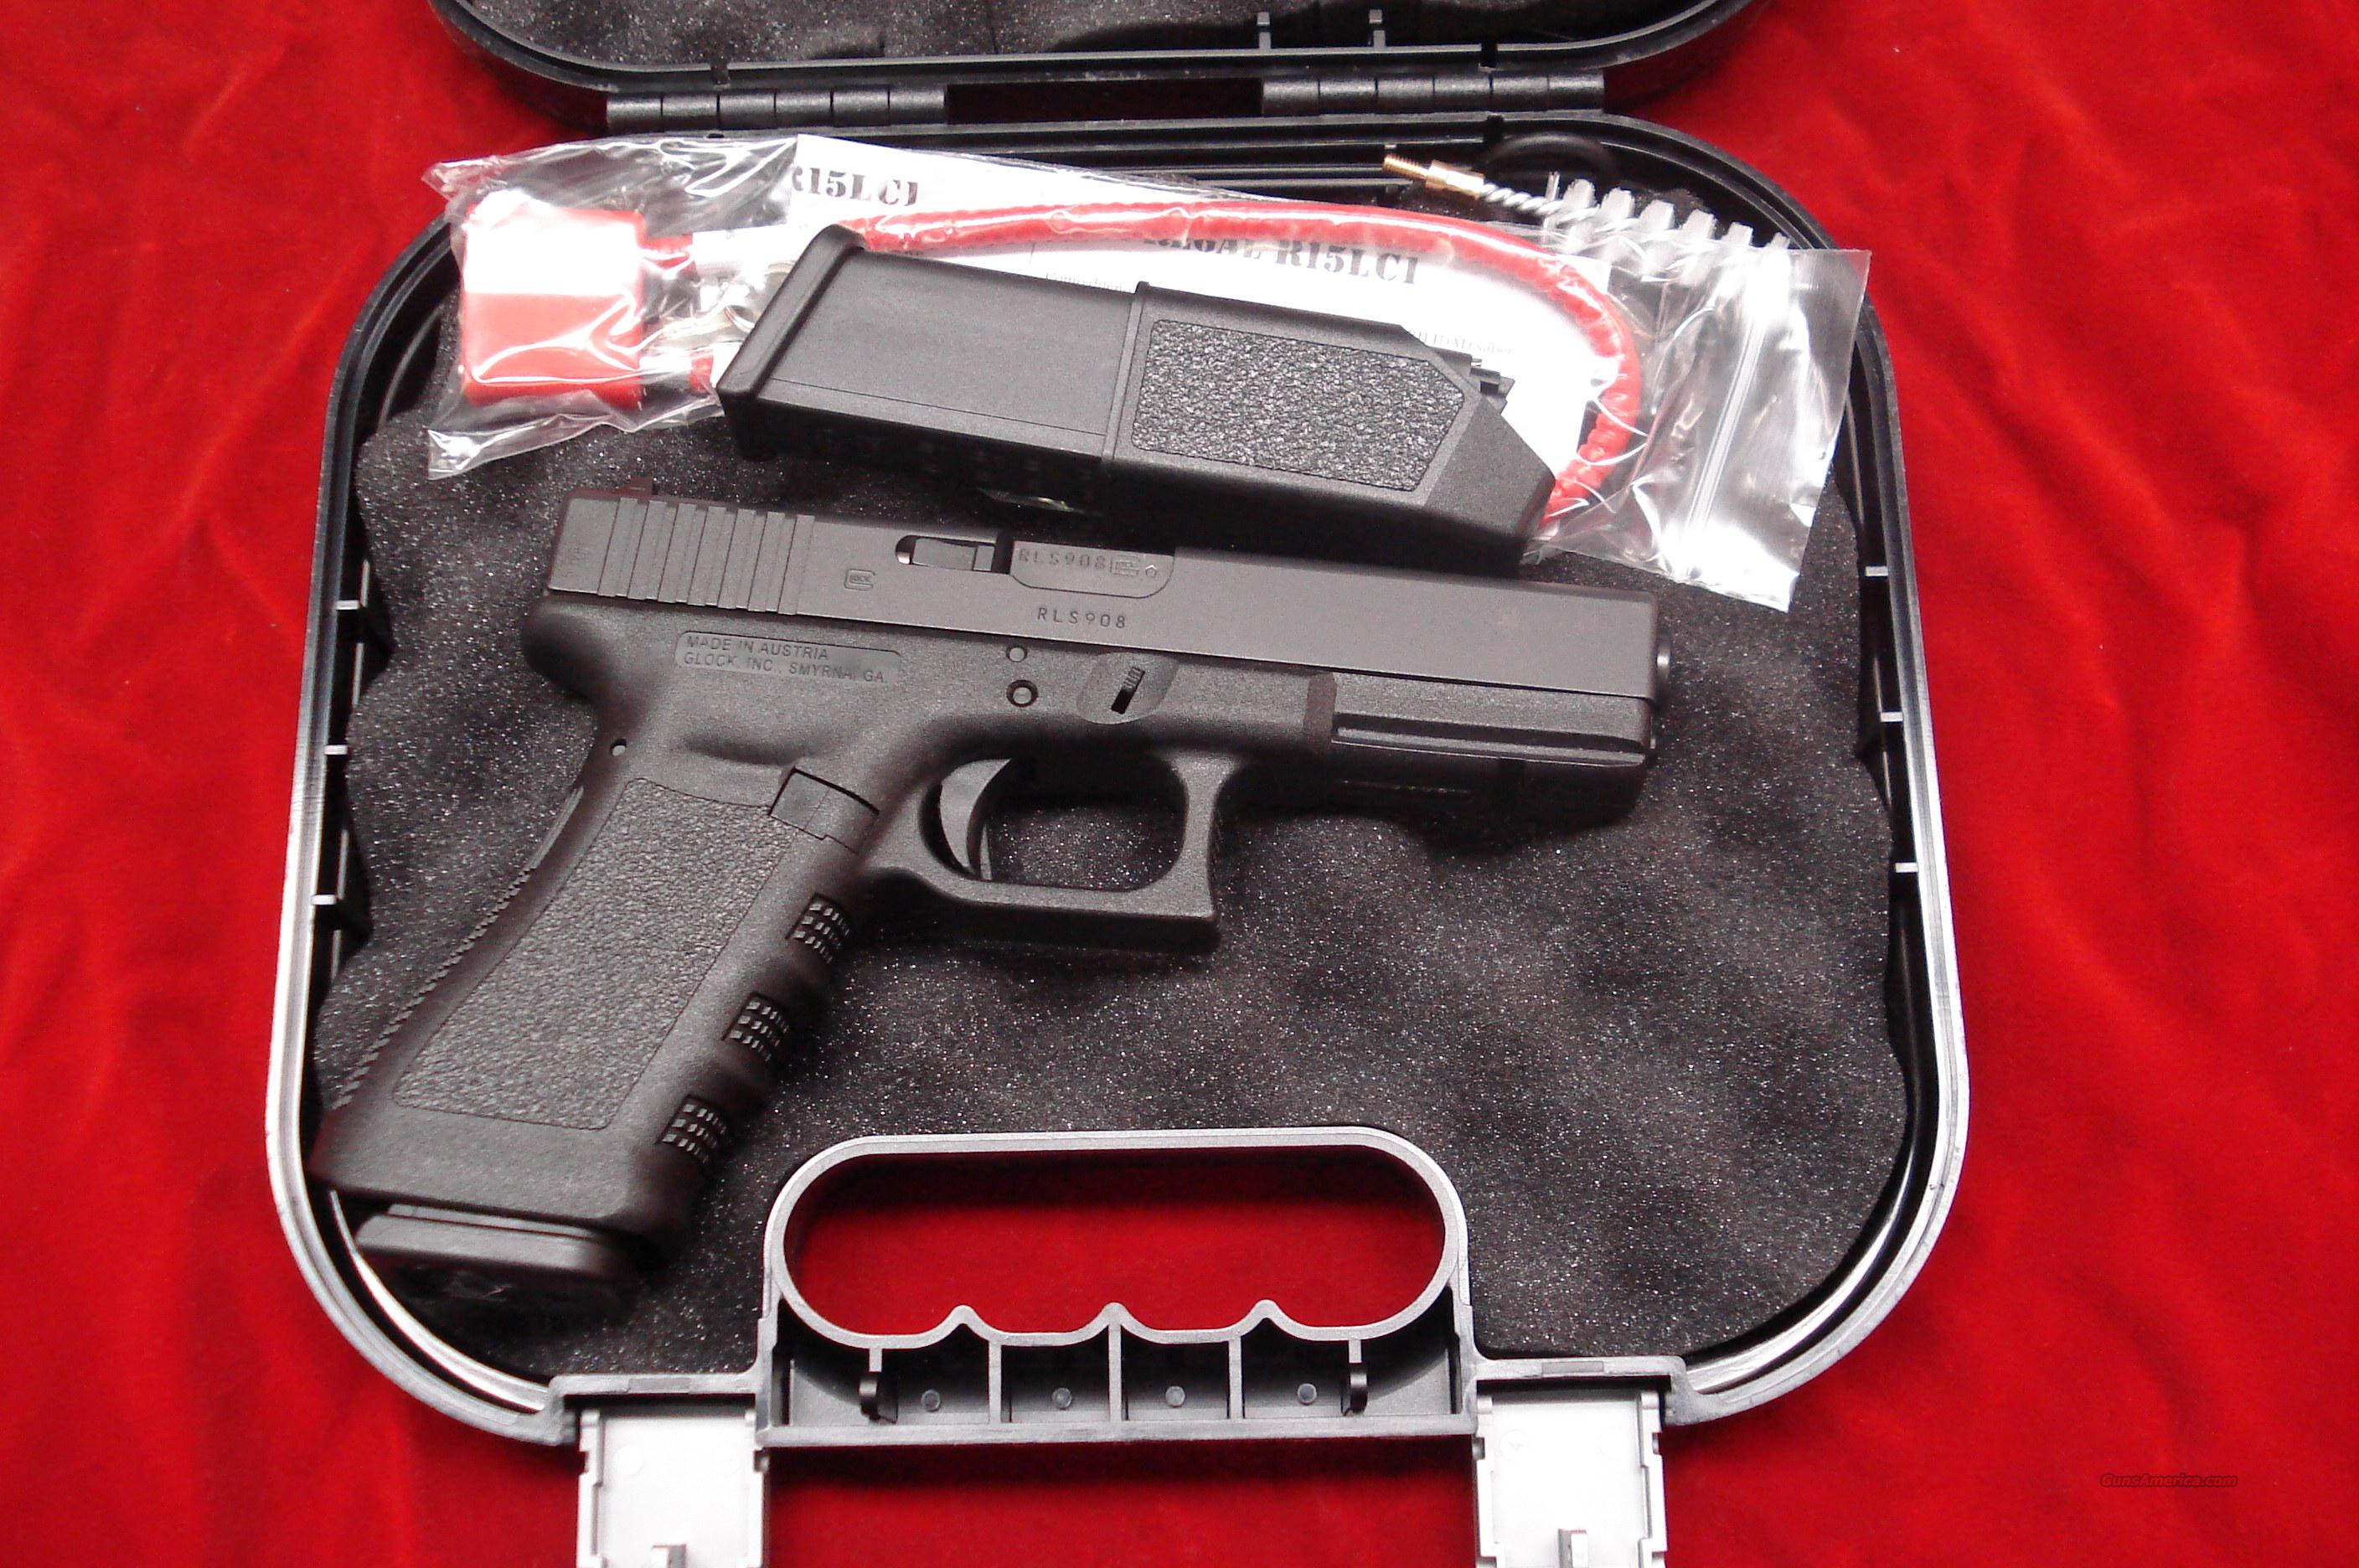 GLOCK MODEL 17C (COMPENSATED) 9MM HIGH CAPACITY MAGAZINES NEW   Guns > Pistols > Glock Pistols > 17